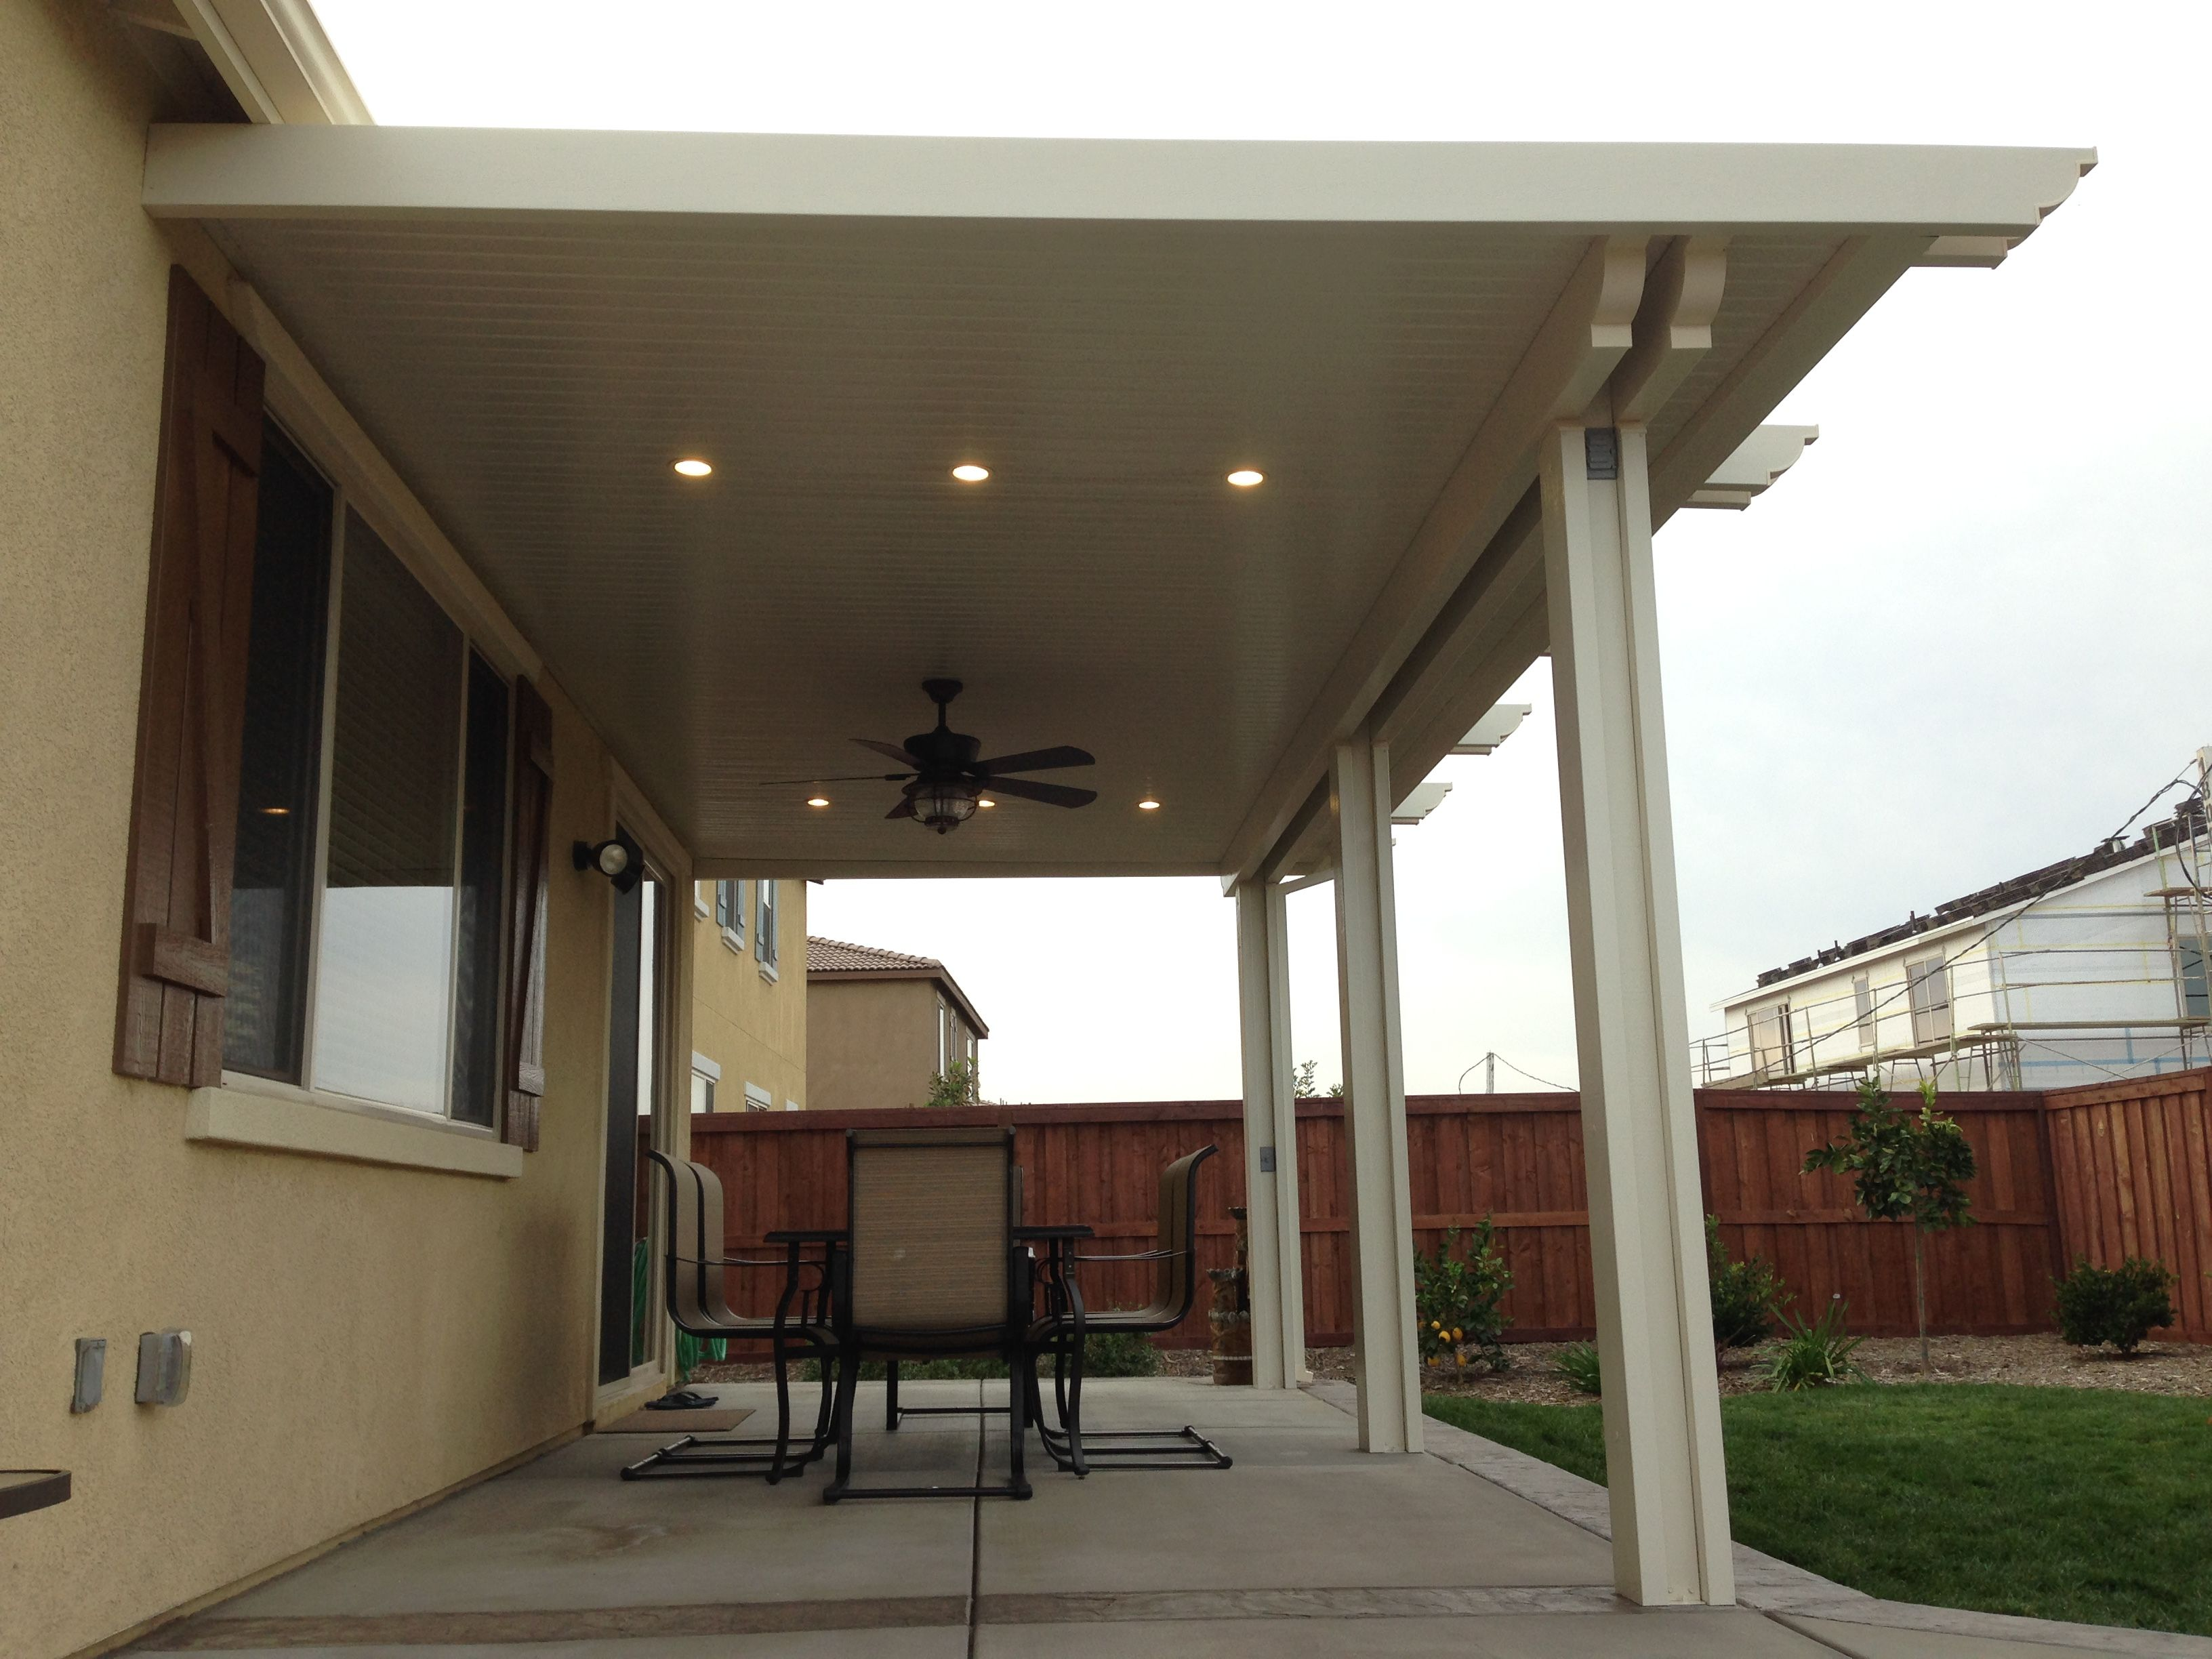 alumawood patio cover with fan and two